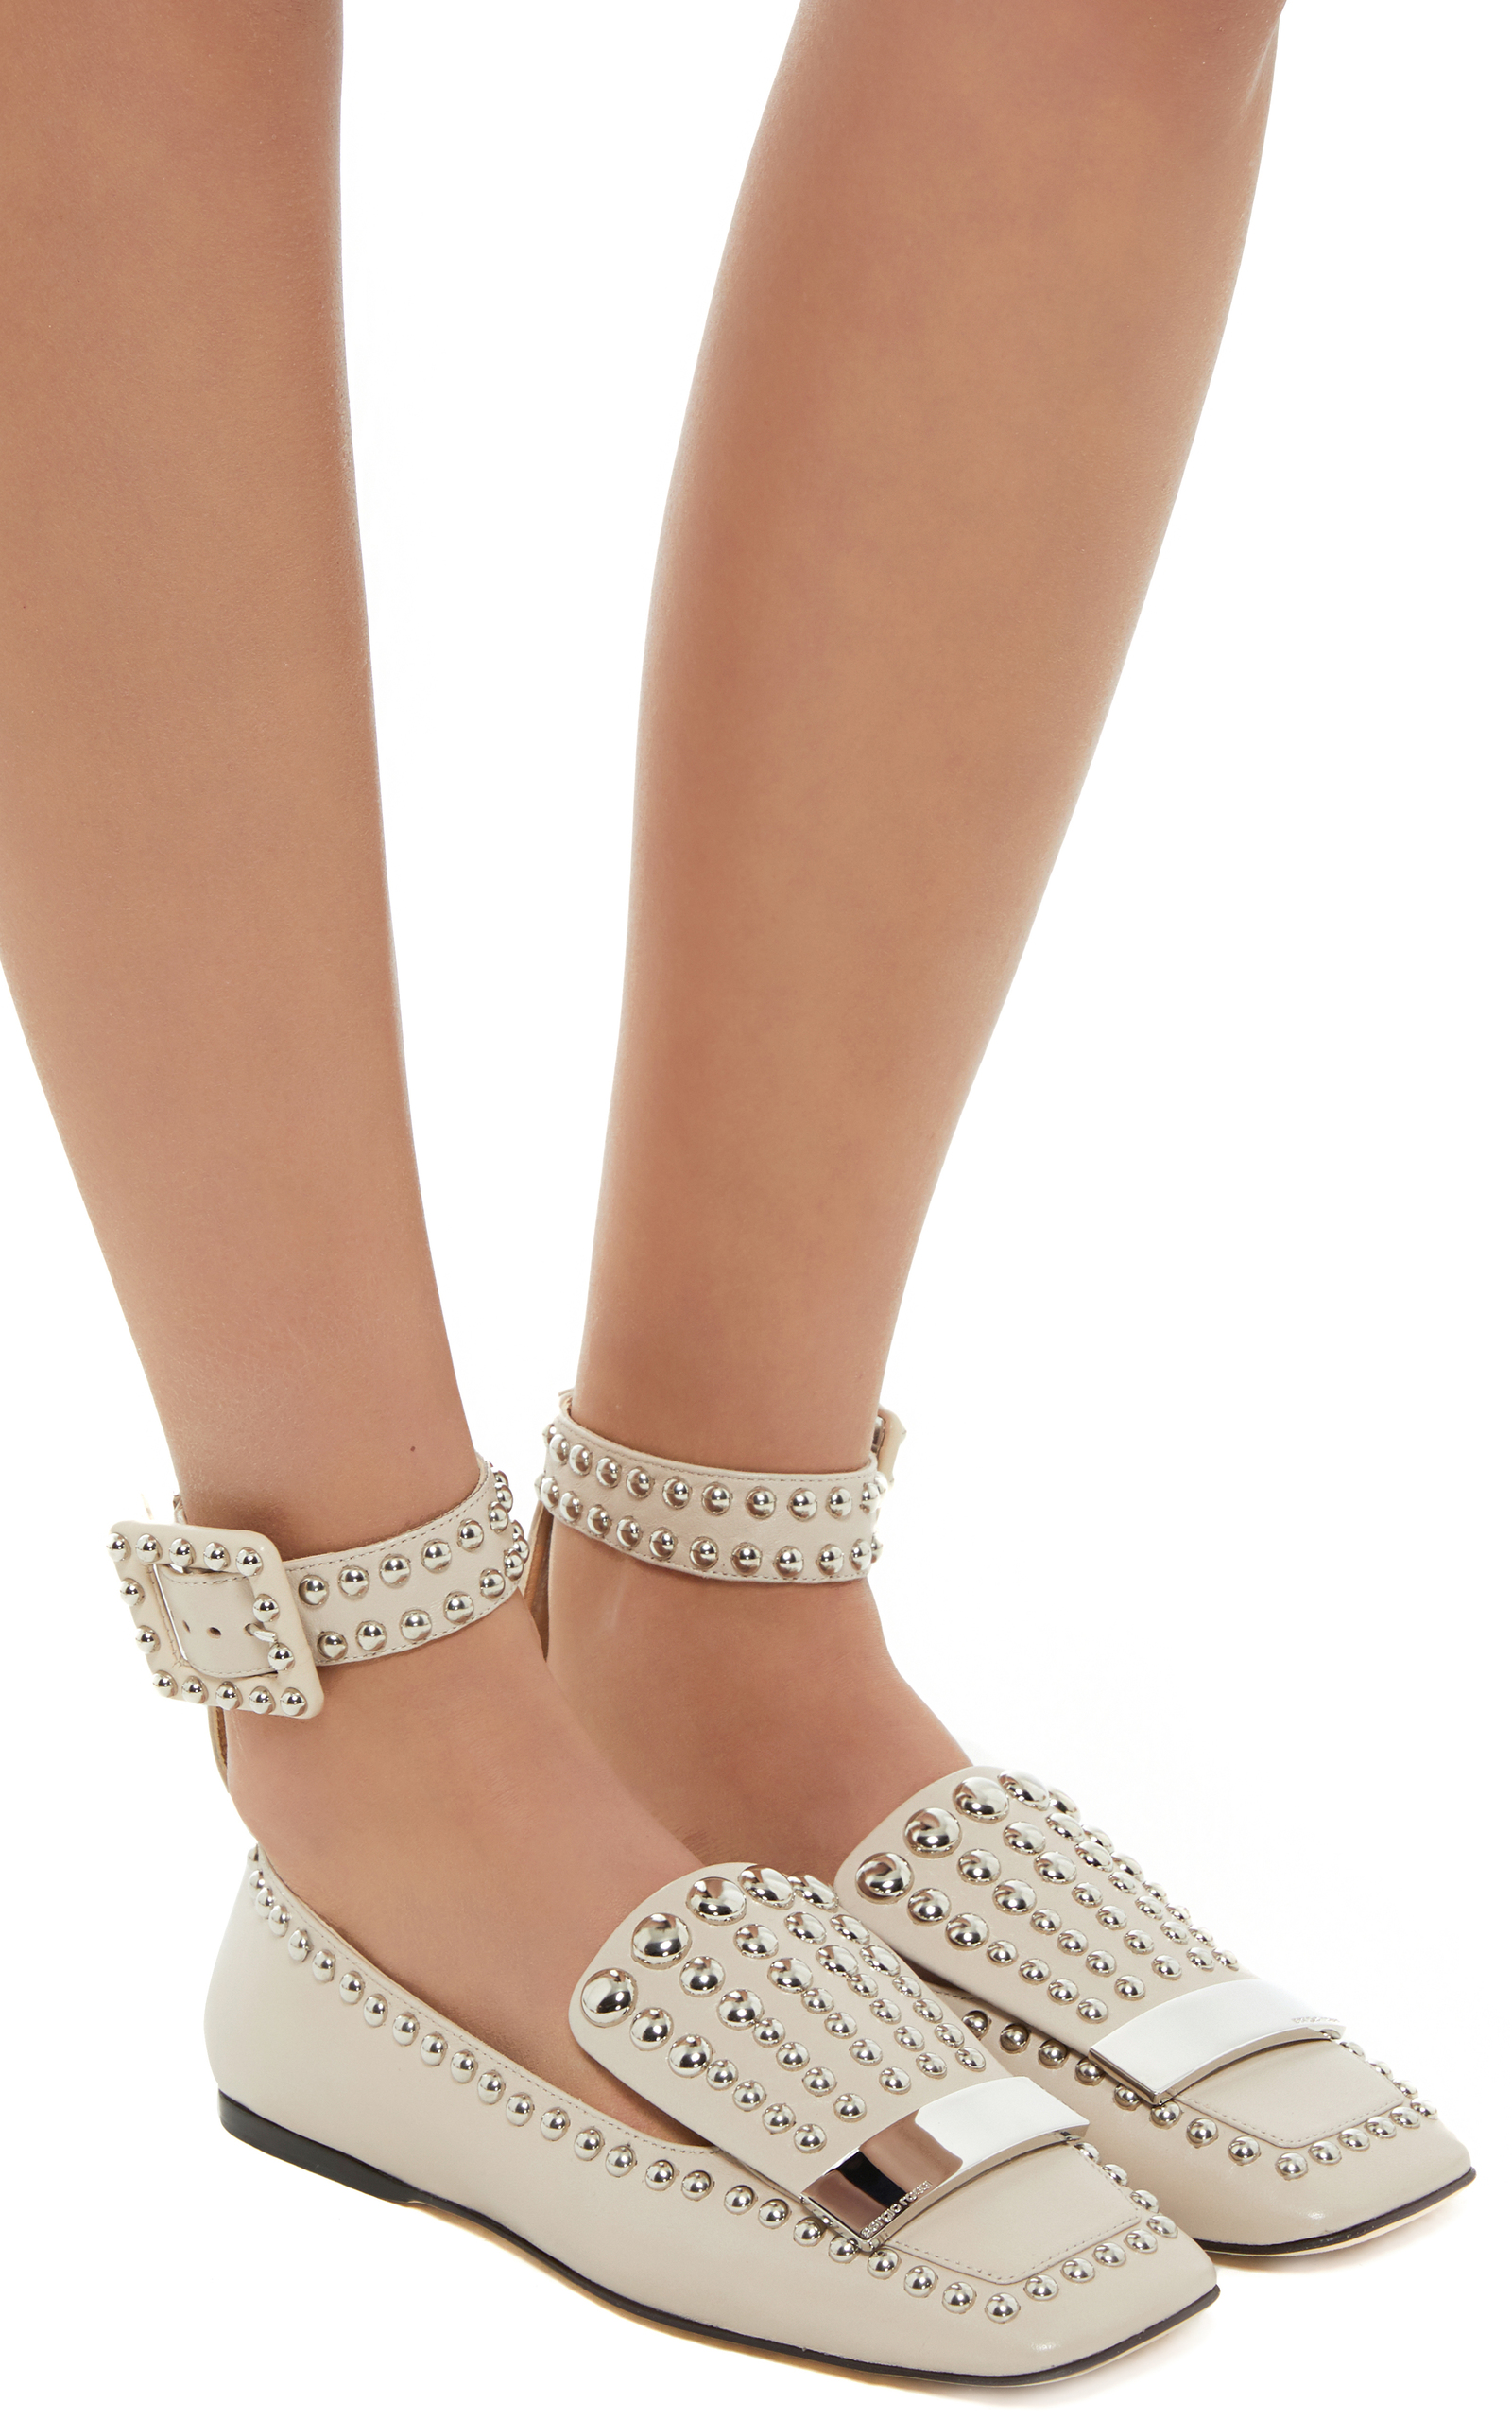 Sergio Rossi studded loafers comfortable free shipping best place sale cheap prices buy cheap footlocker v94mk2cvtV